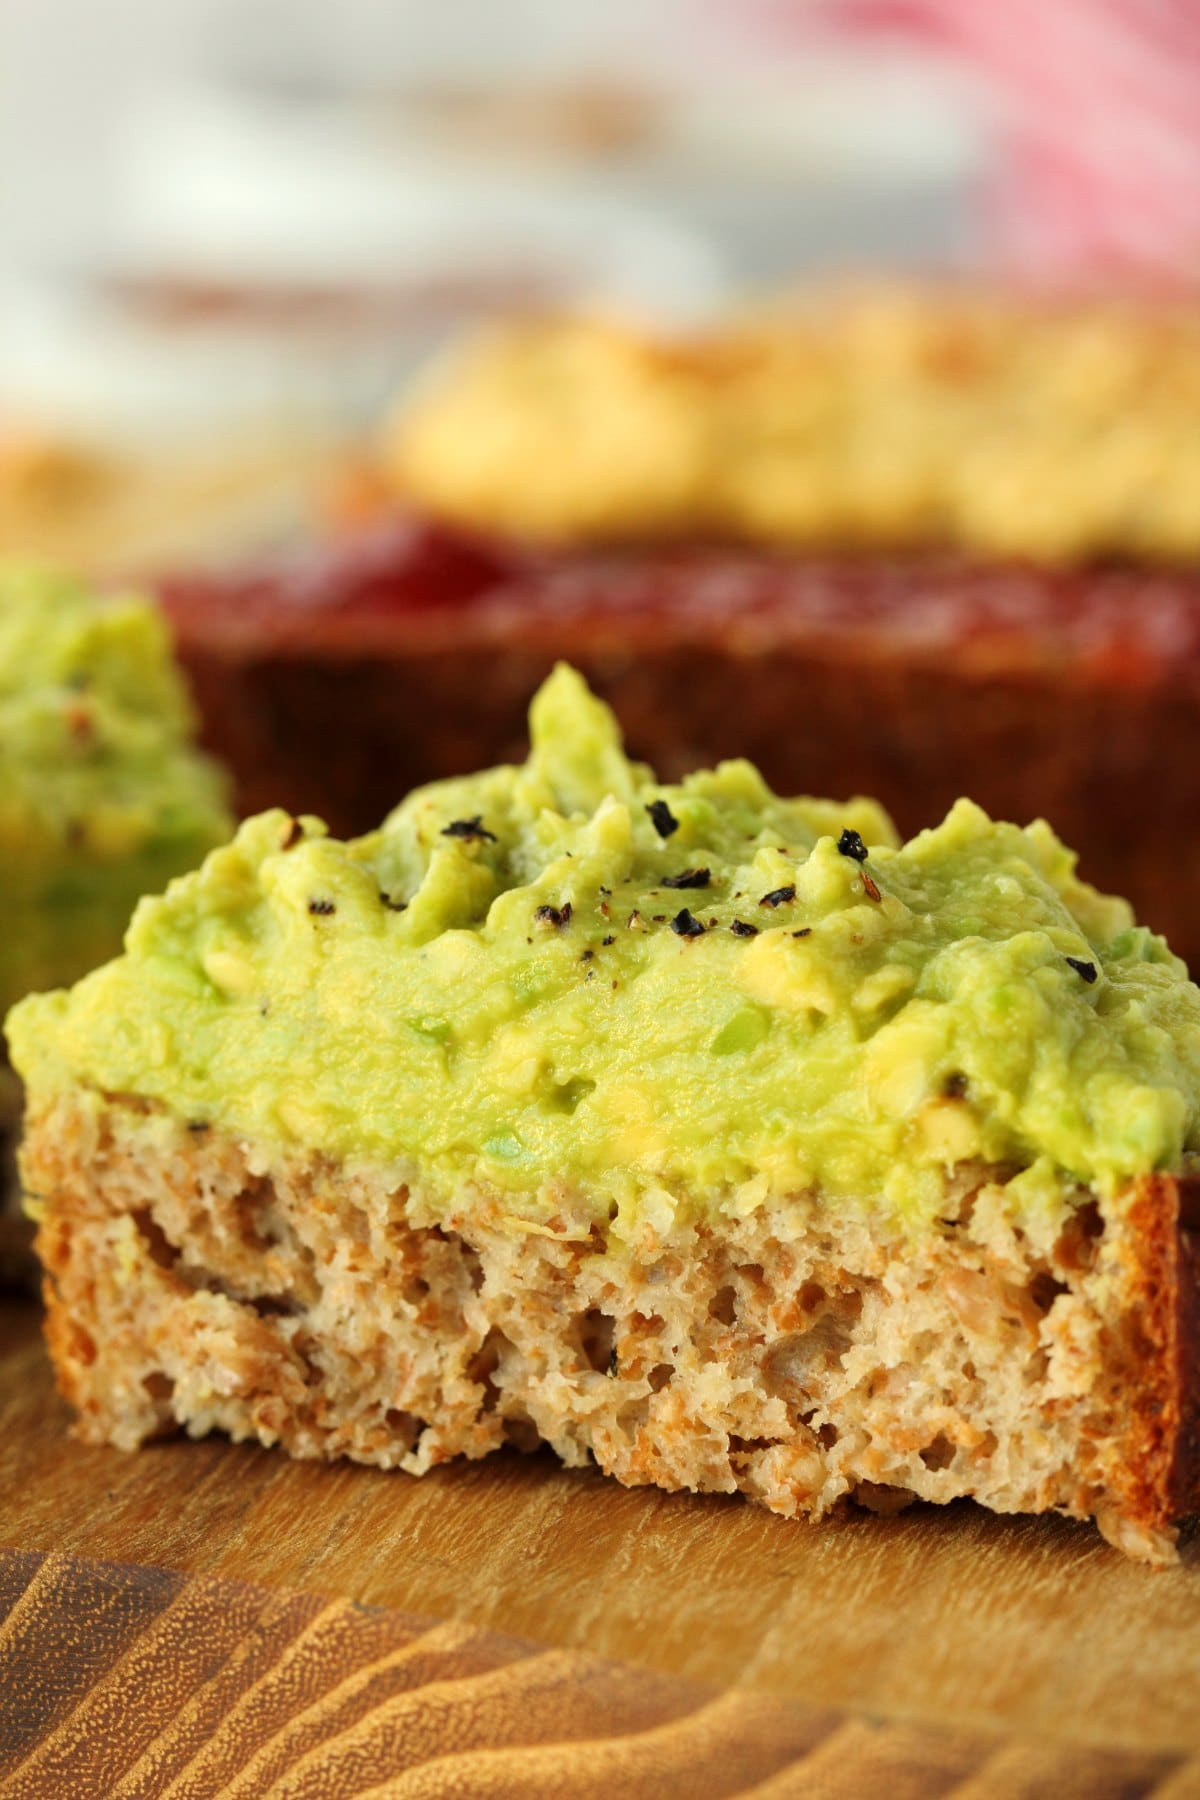 A slice of wholewheat bread topped with avocado and sliced in half.